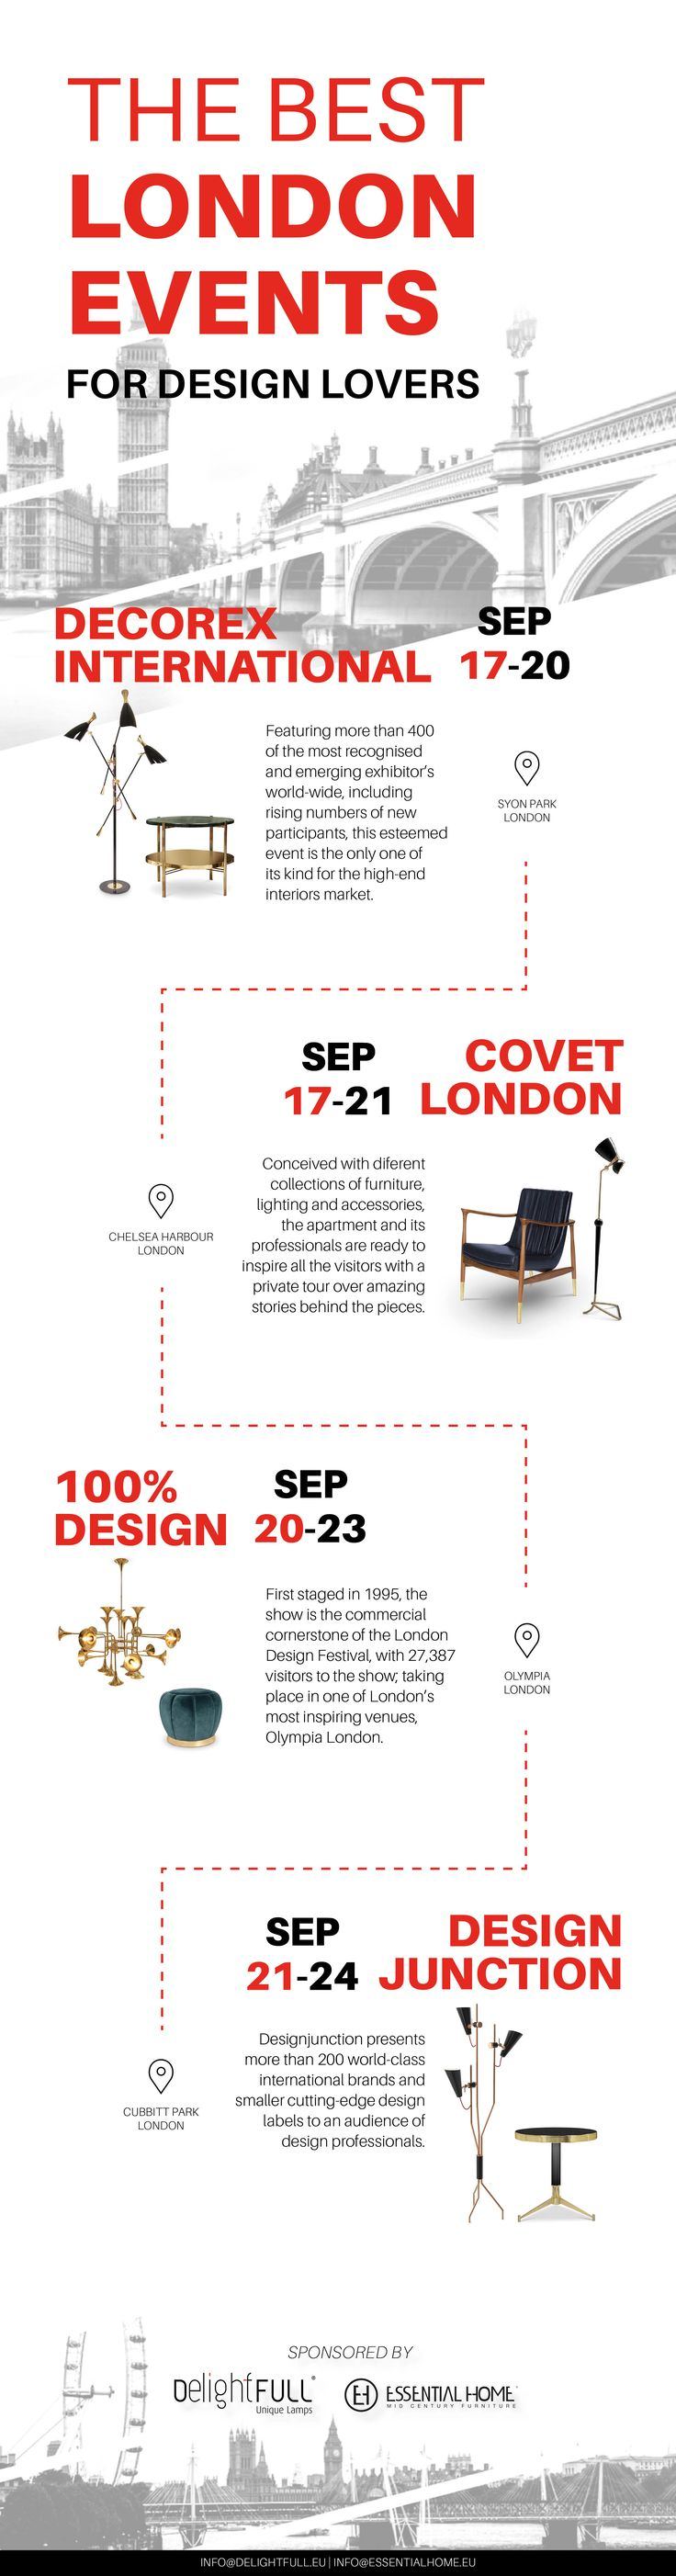 Best London Design Events with Mid Century Furniture